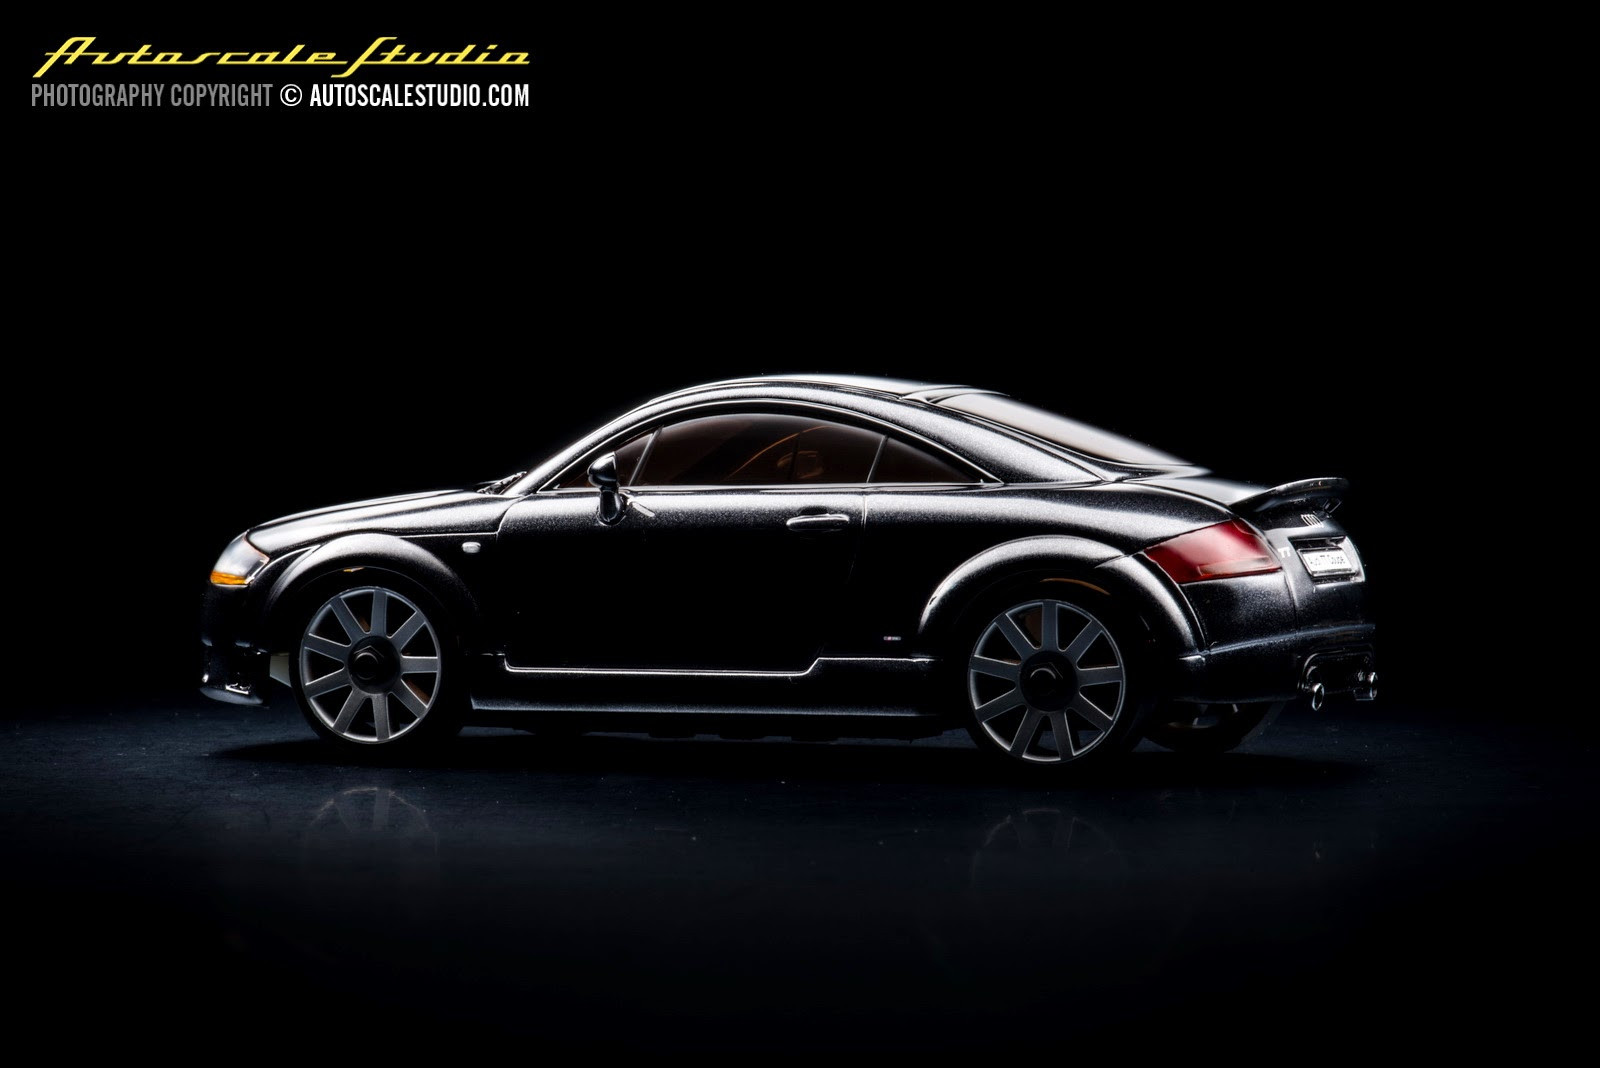 mzx406bk audi tt coup quattro s line black autoscale studio. Black Bedroom Furniture Sets. Home Design Ideas